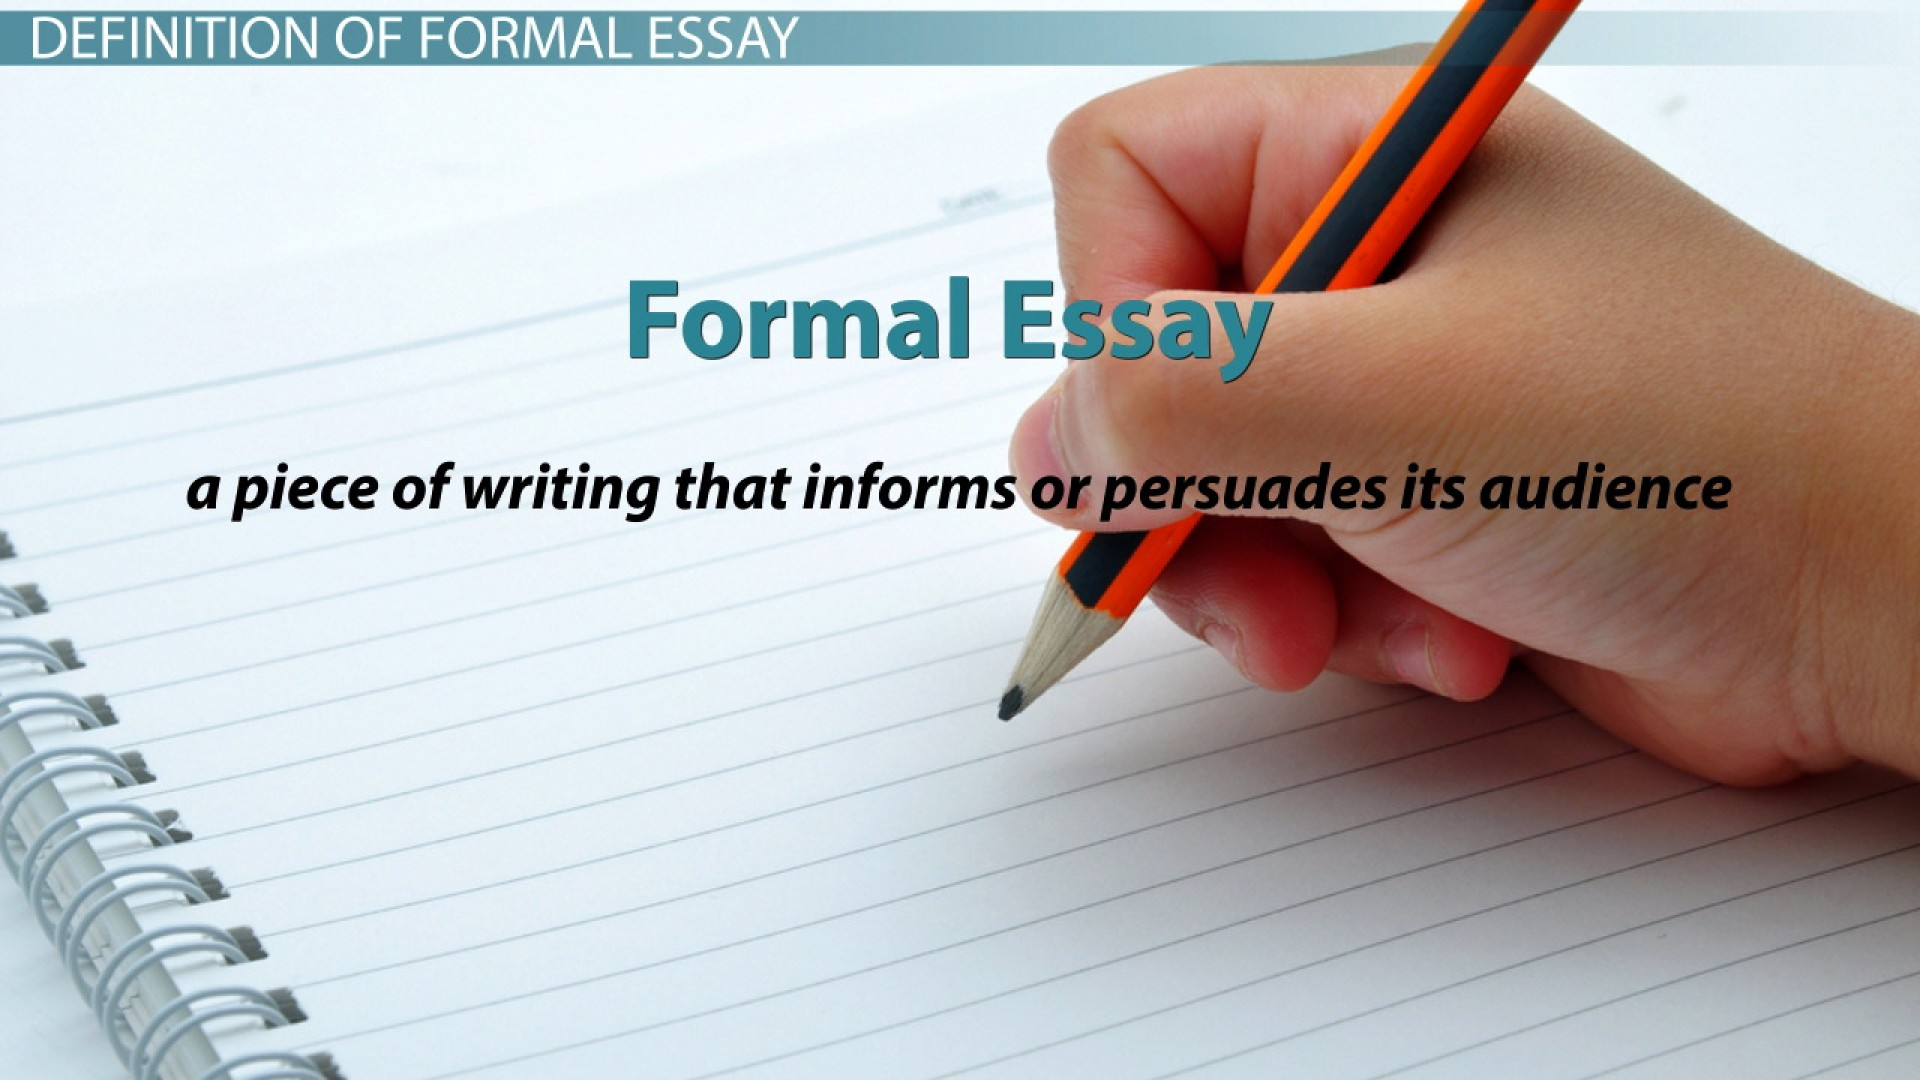 022 Essay Example  Formal Definition Examples 111863 How To Write Awesome A Introduction Conclusion Paragraph For Outline1920